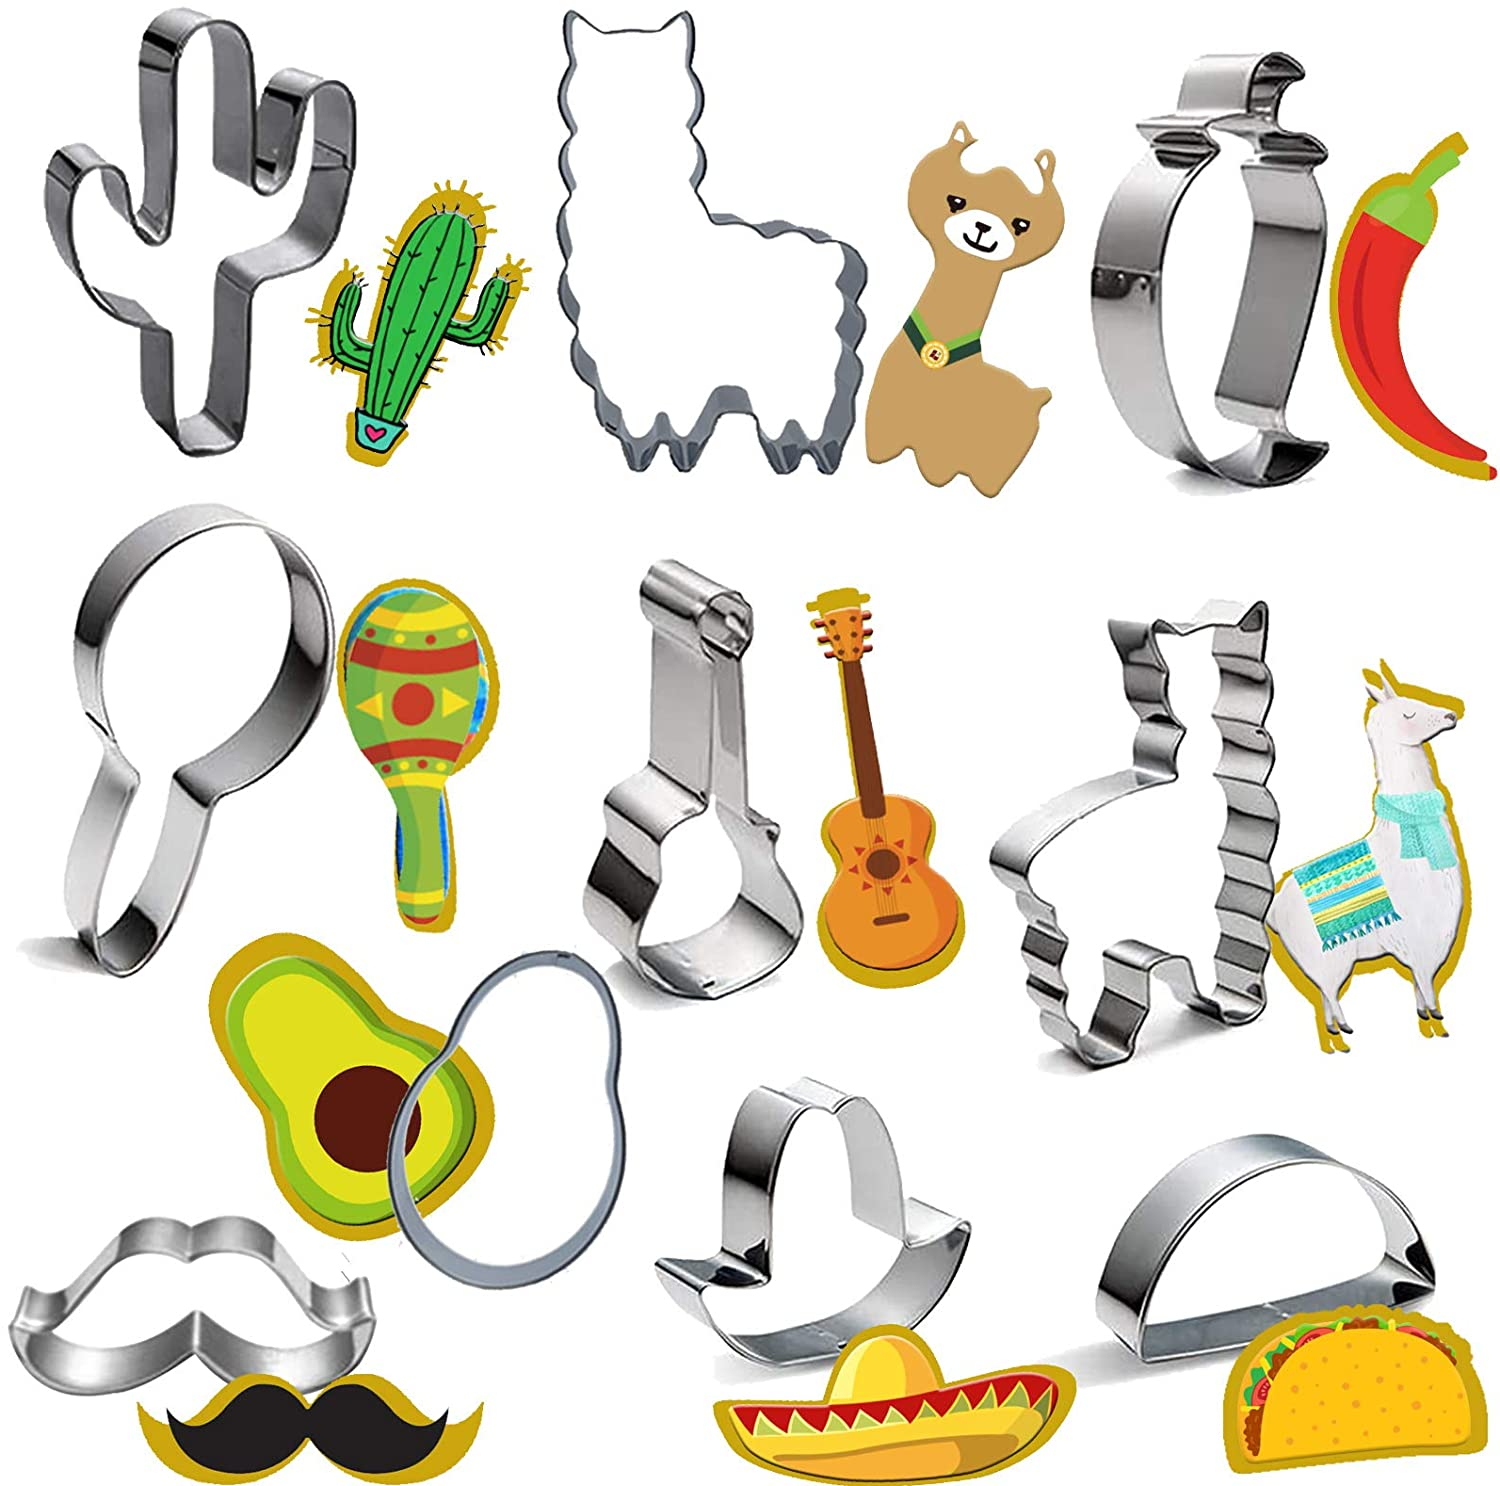 10pcs Mexican Fiesta Cookie Cutter Set - Stainless Steel Cinco De Mayo Mexican Festival Cookie Molds Alpaca Cactus Hat Guitar For Baking Decorative Food DIY Supplies